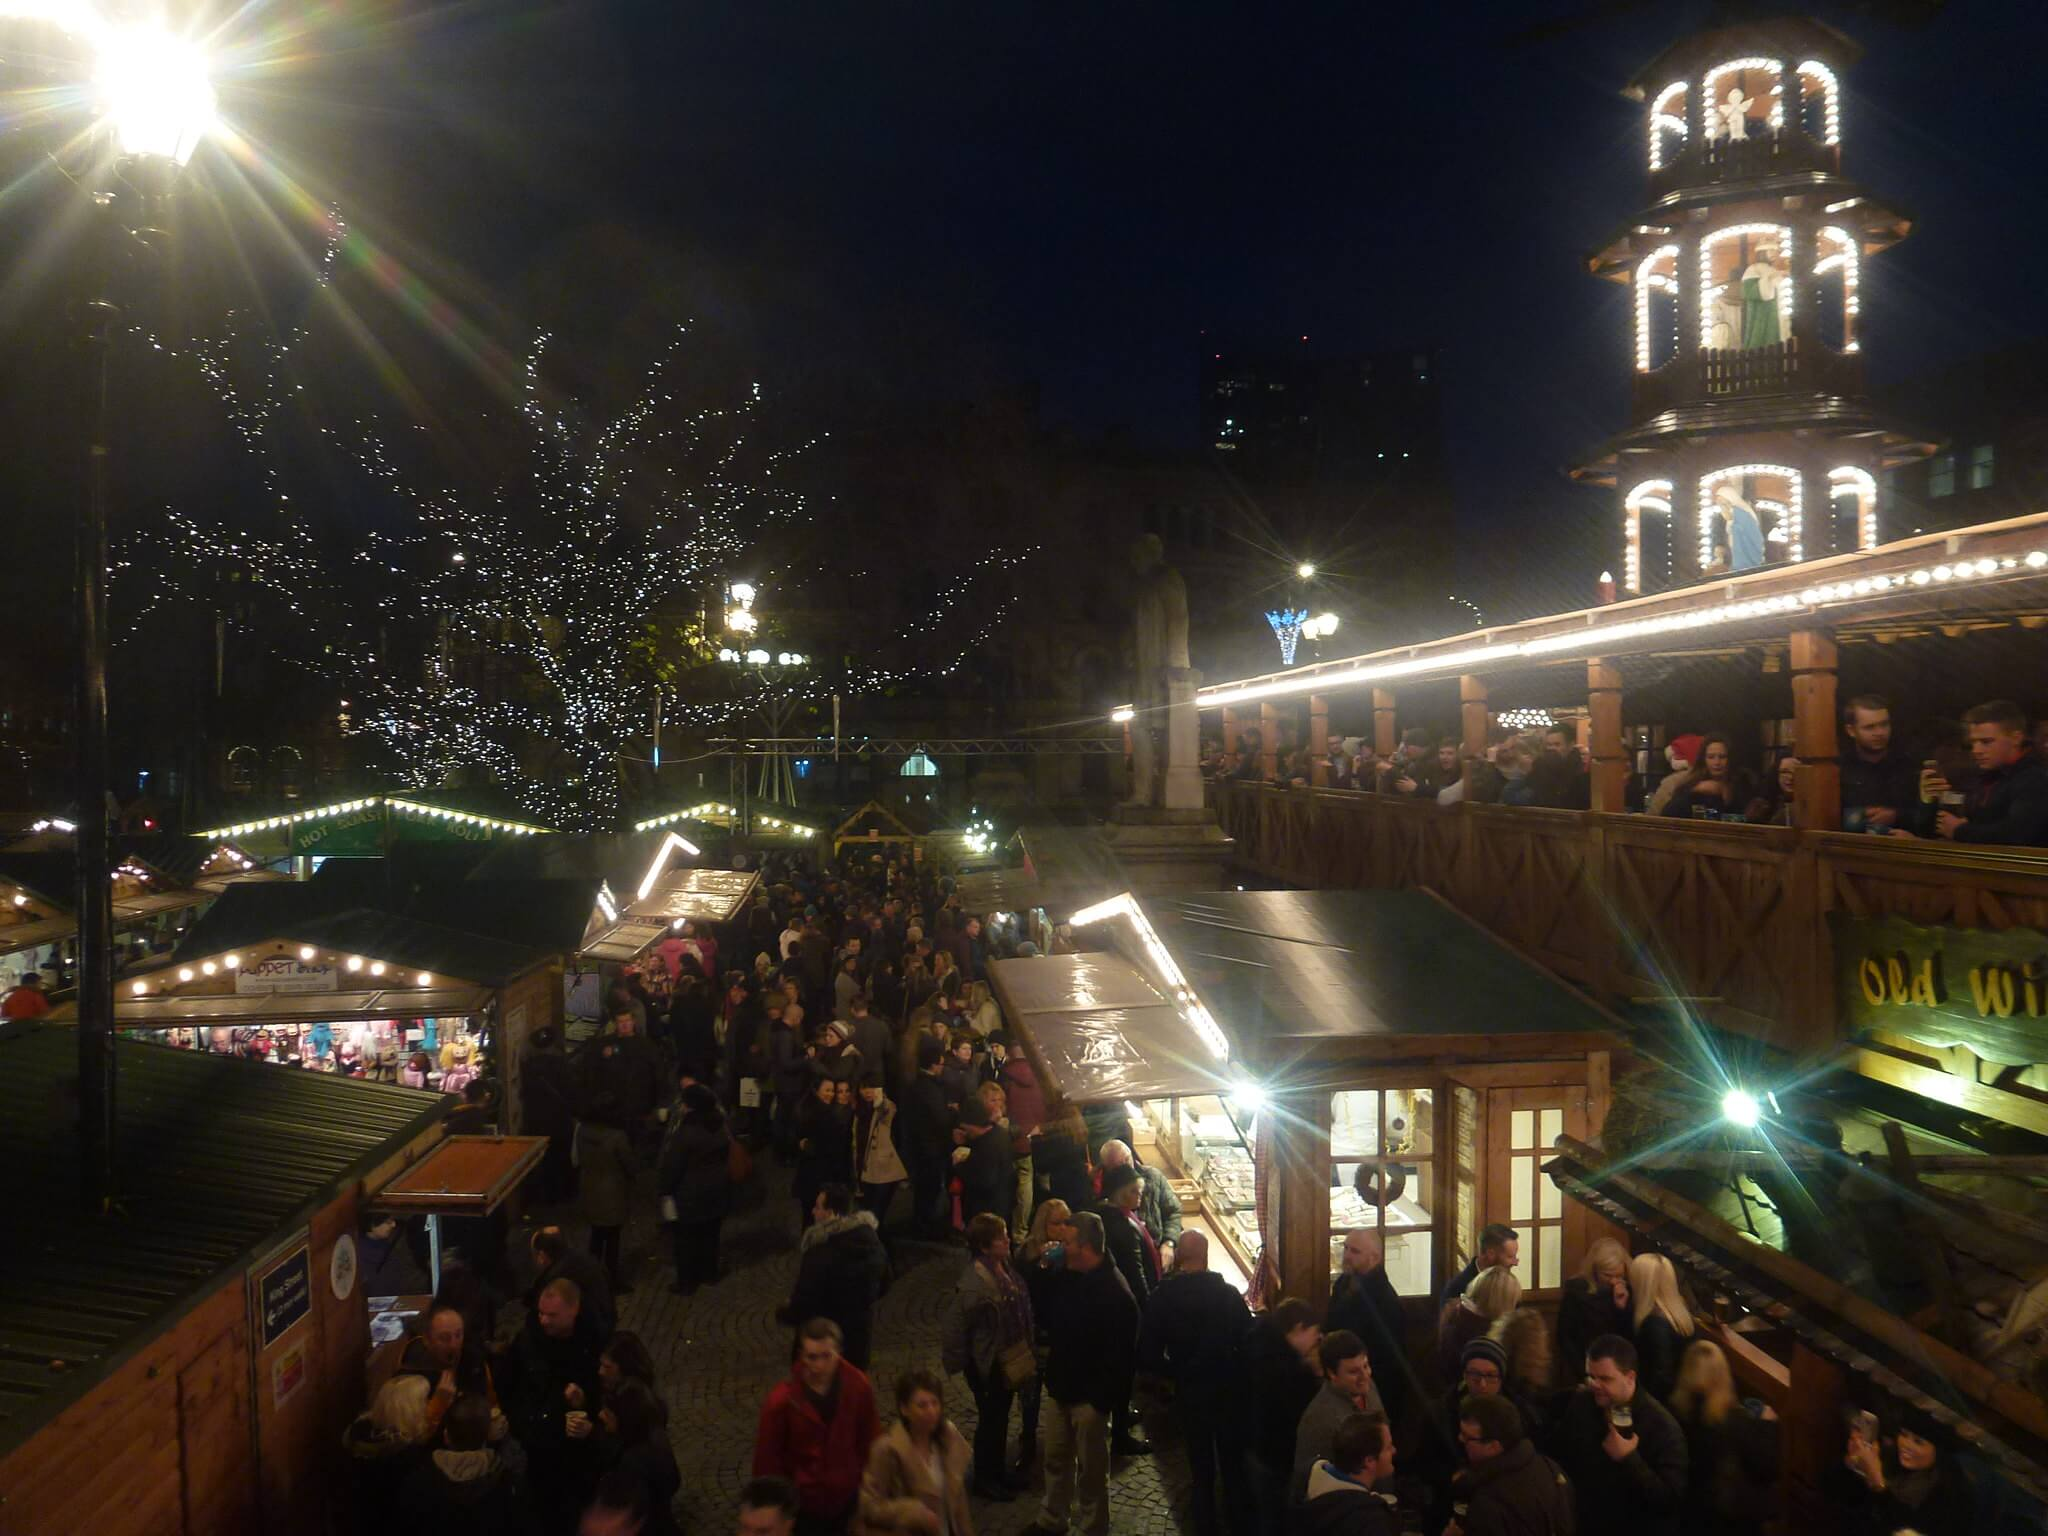 manchester christmas markets map, manchester christmas markets 2019, manchester christmas markets food, manchester christmas markets 2019 location